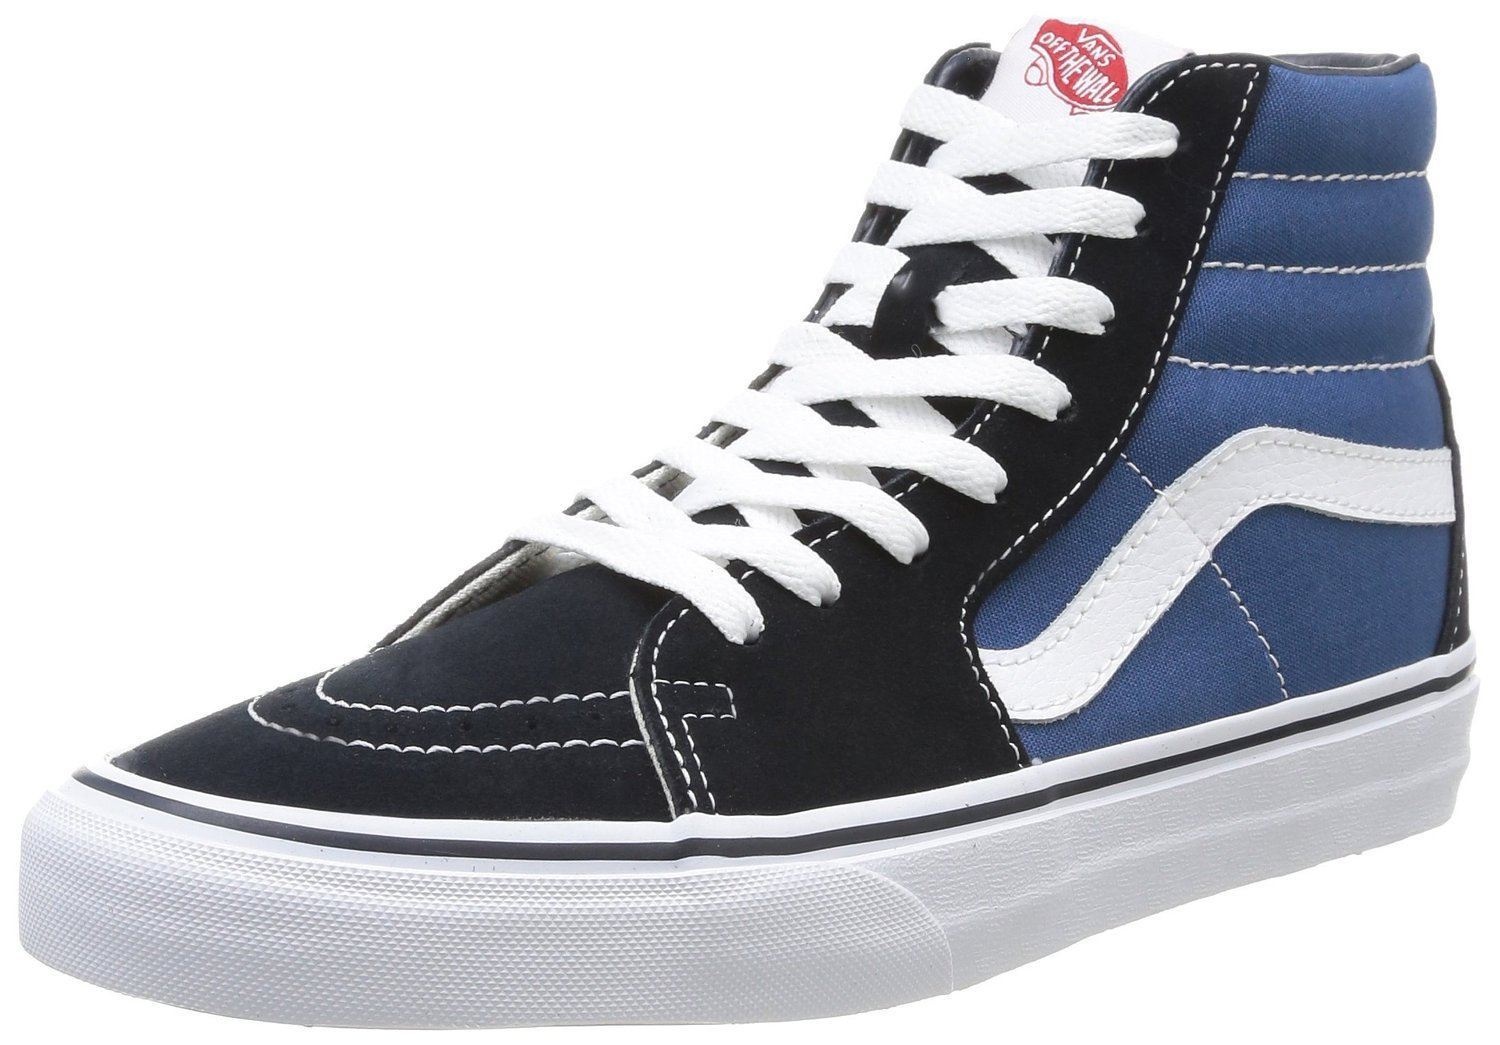 Vans SK8 Hi Navy White Red Suede Unisex Trainers Shoes Quick View 5ecf65d05000